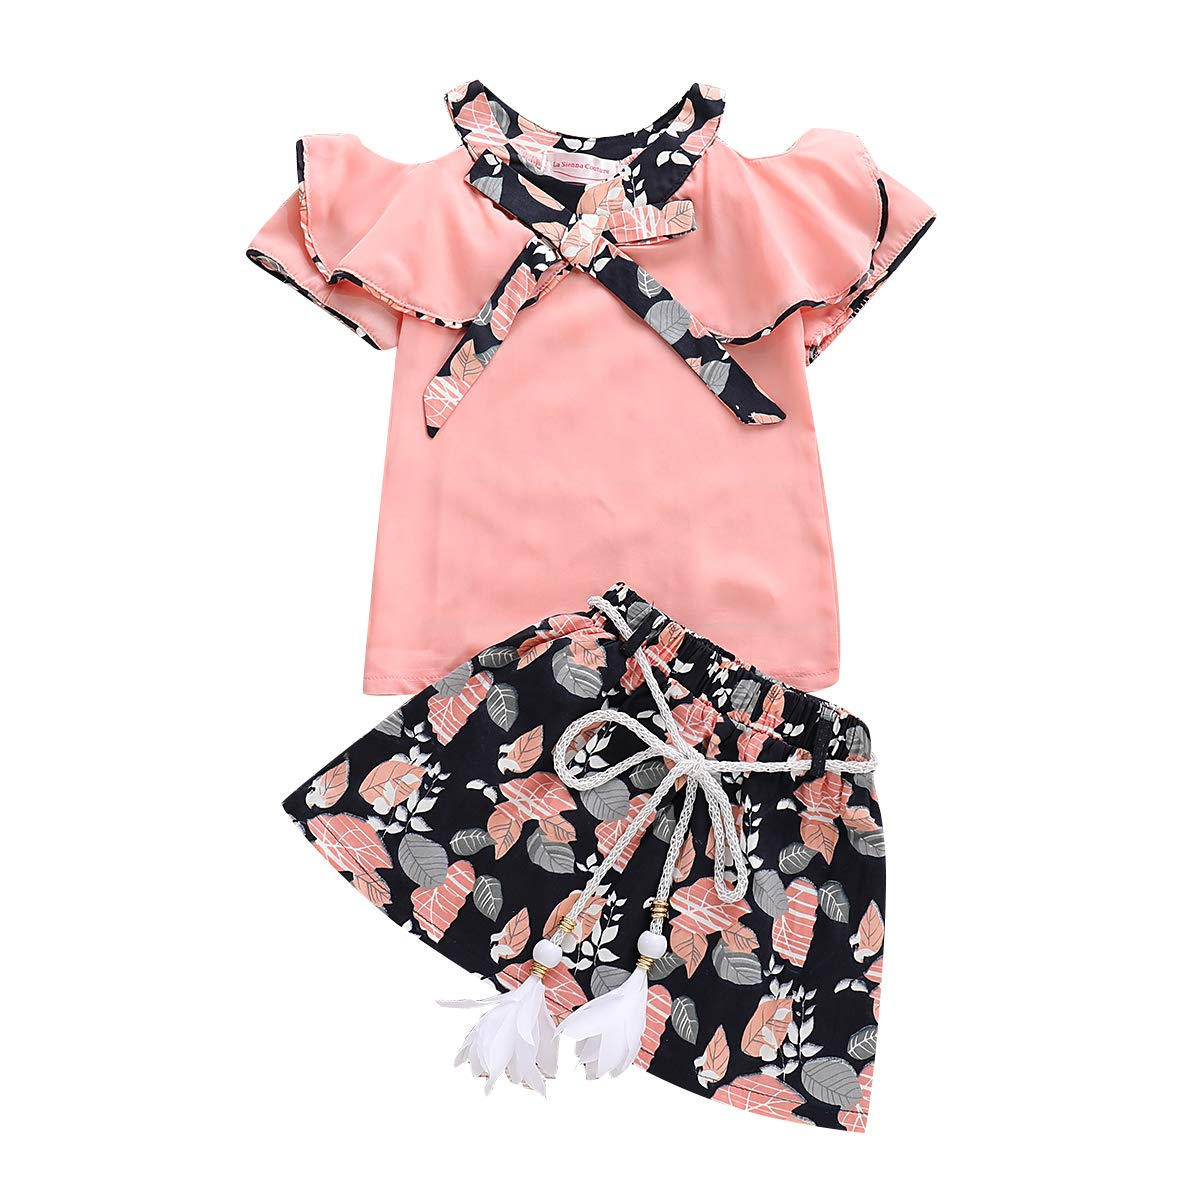 Skirts Set for Toddler Girls Summer Chiffon Tops and Floral Print Skirts Outfits Set